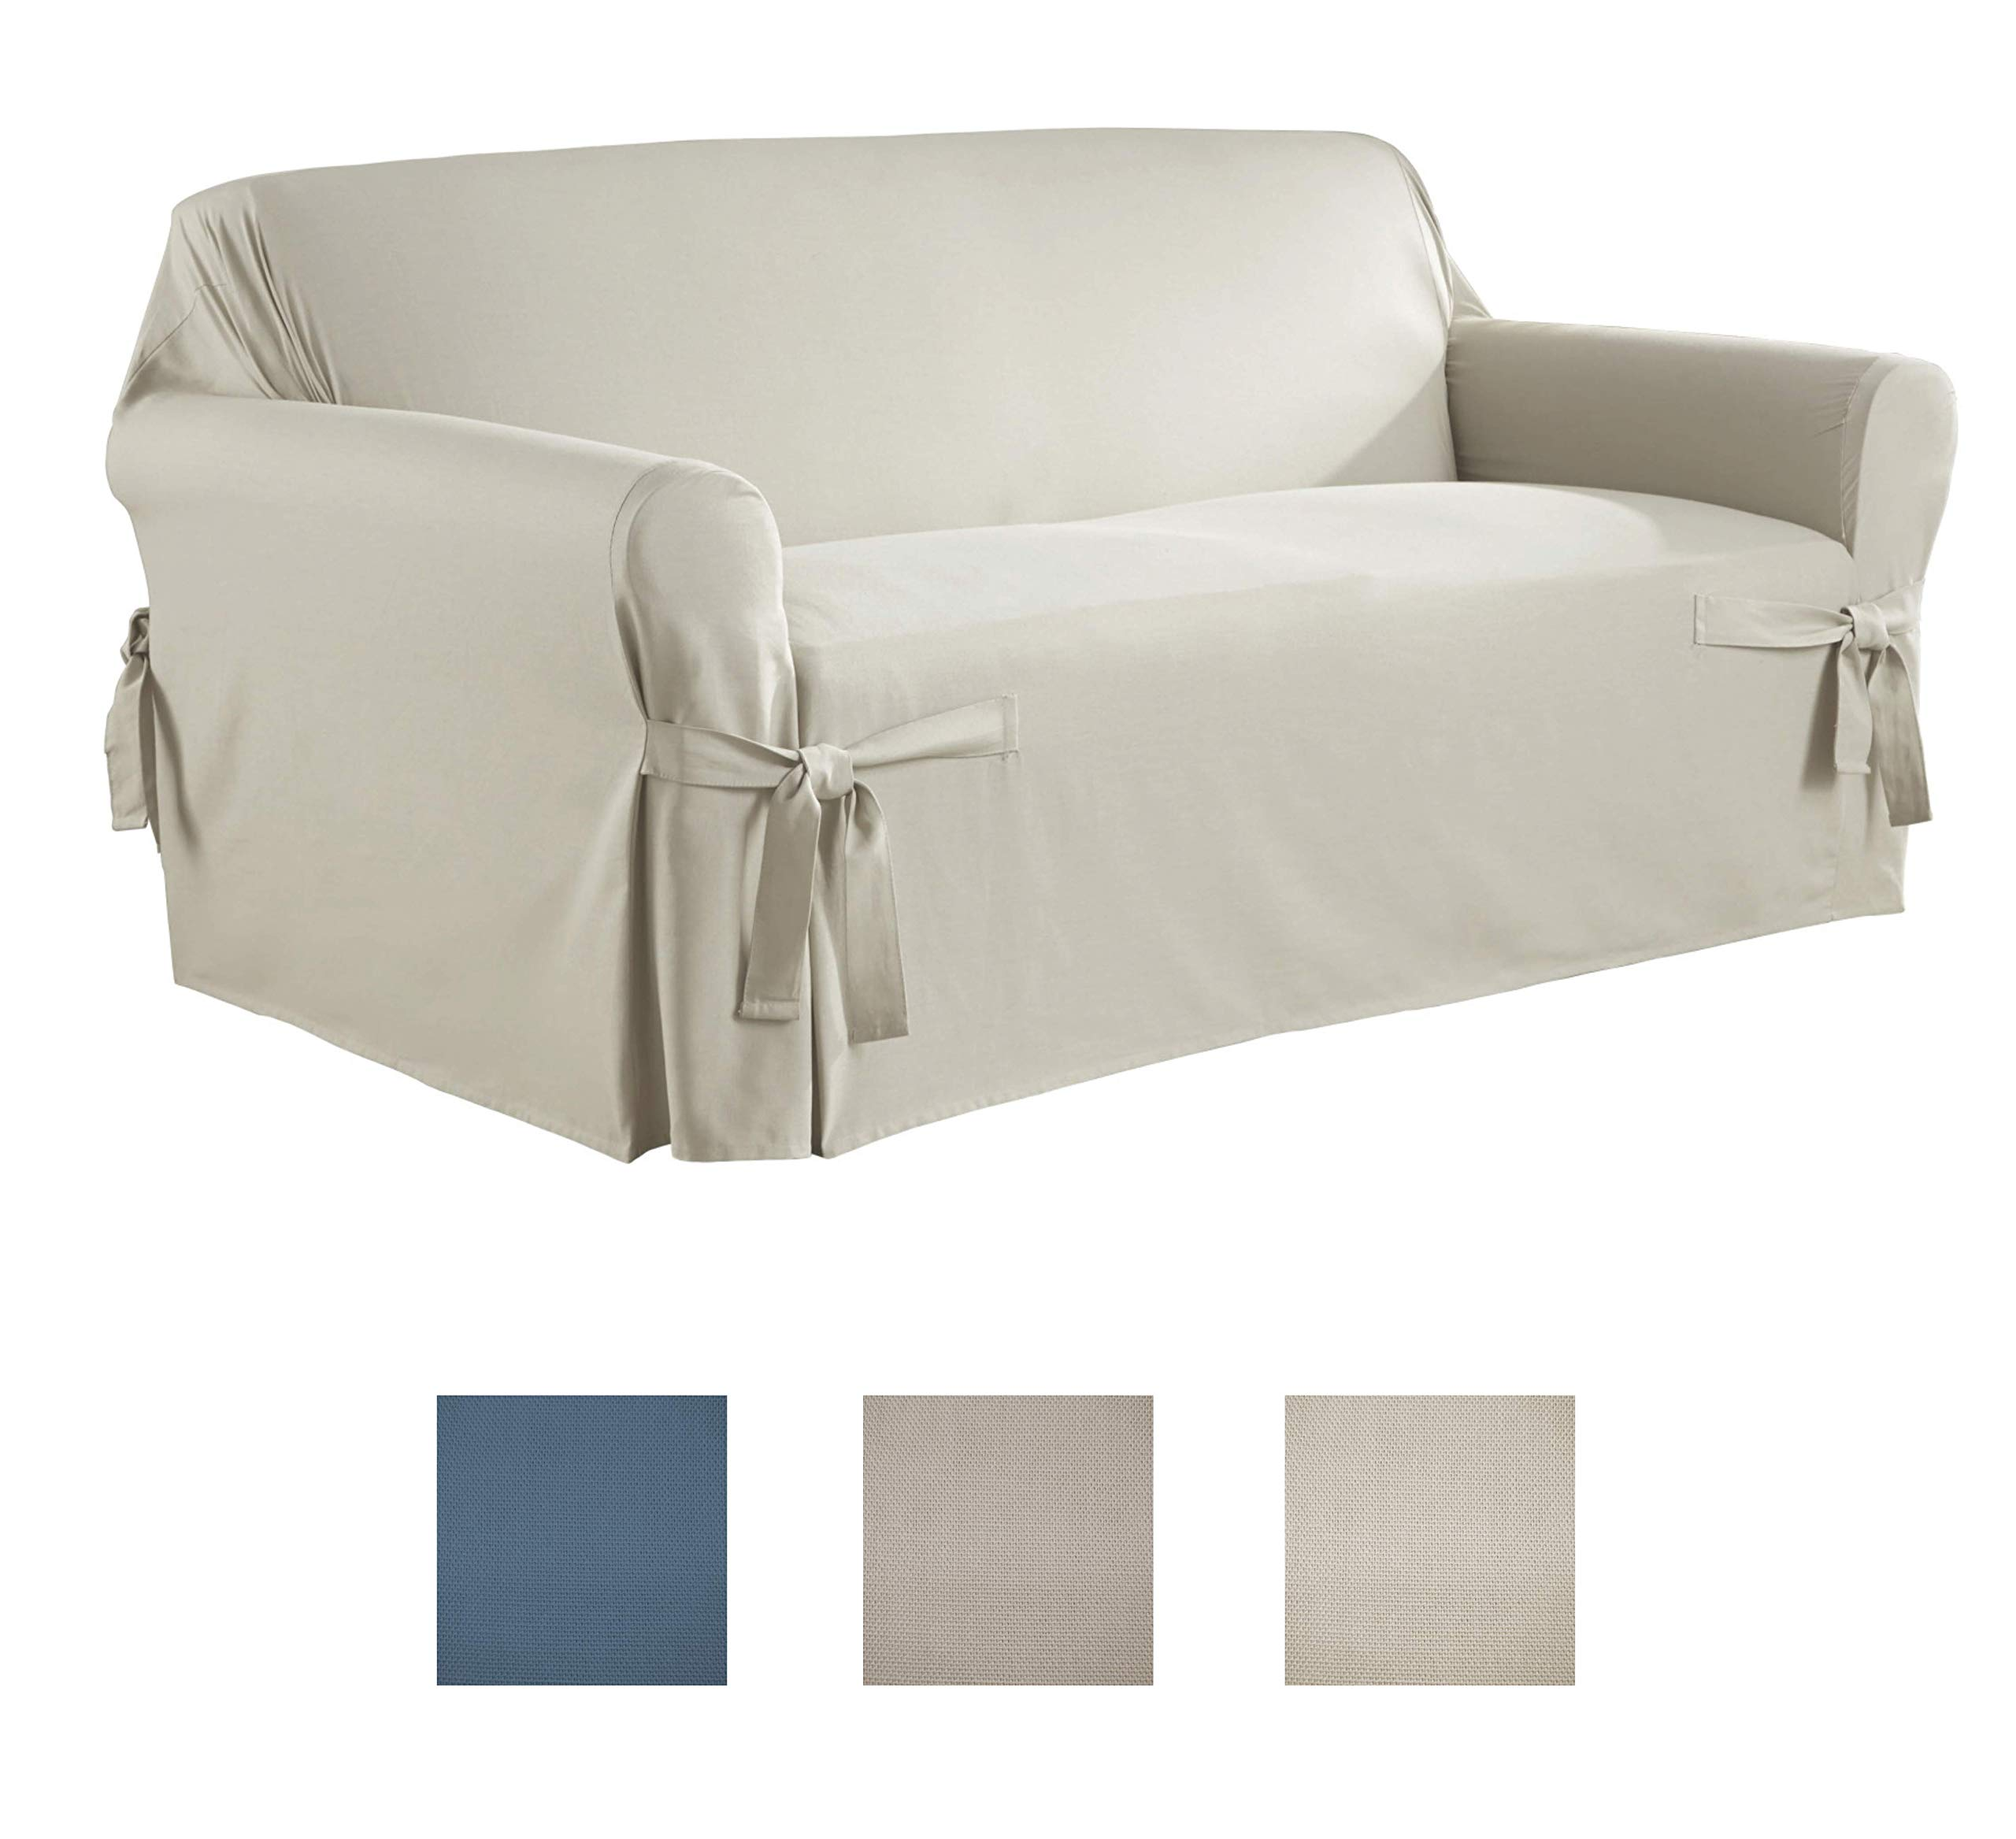 Serta | Relaxed Fit Durable Woven Linen Canvas Furniture Slipcover (Love Seat, Natural) by Perfect Fit